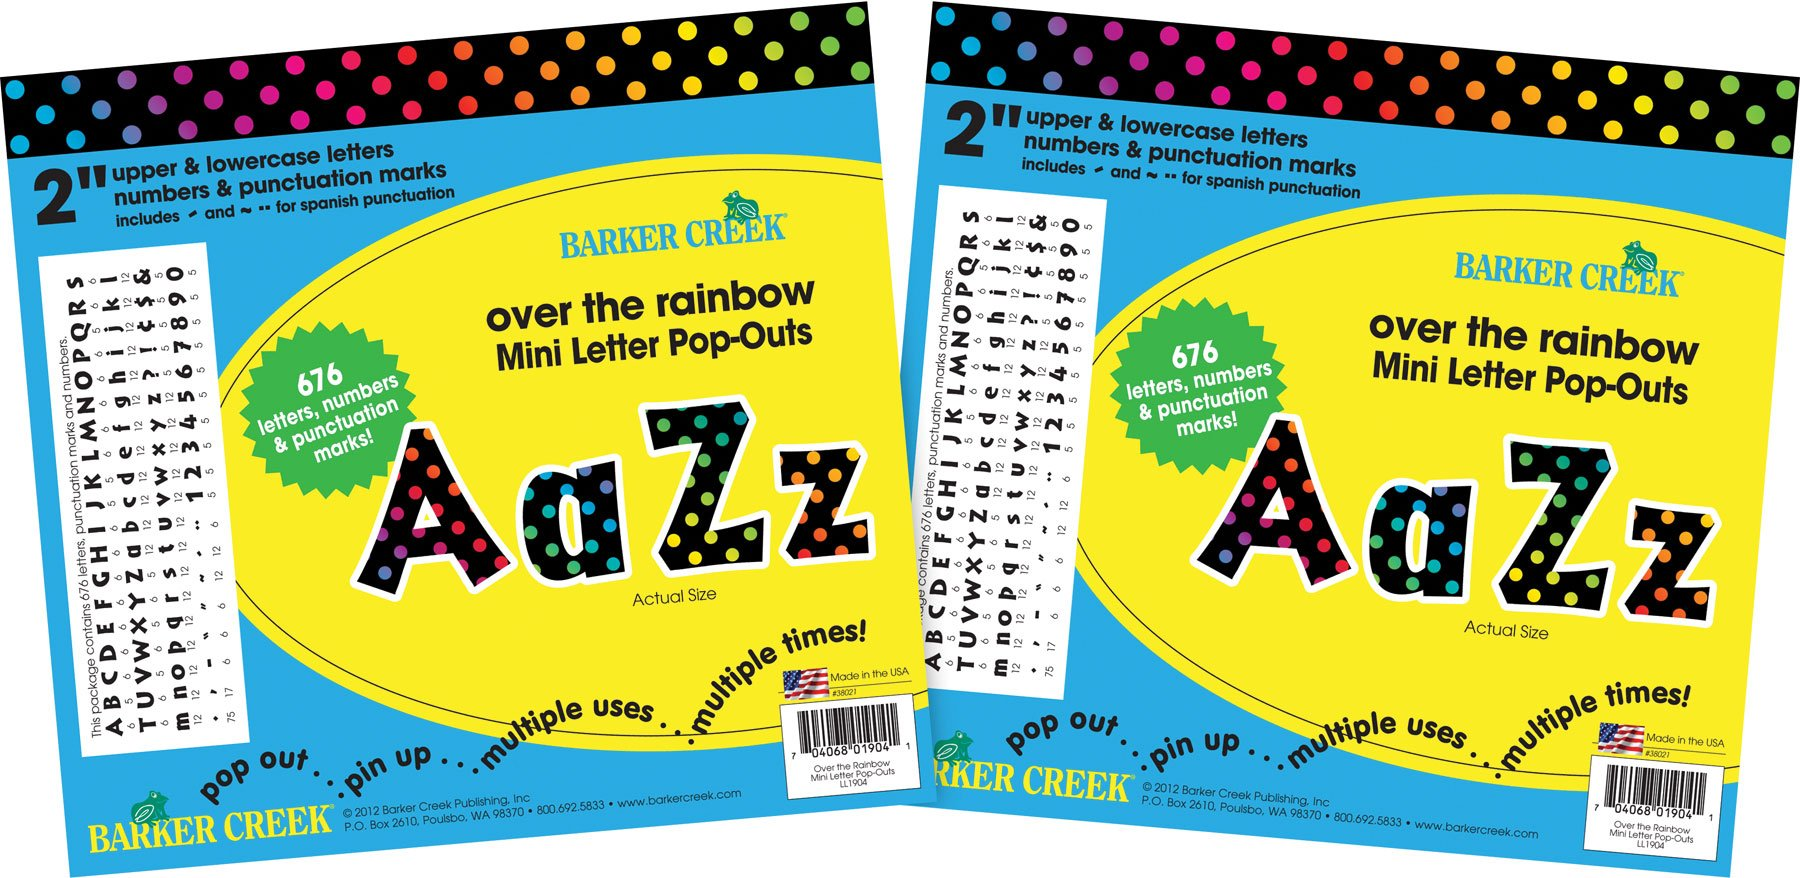 Barker Creek 2'' Letter Pop-Outs 2 Pack - Over The Rainbow (BC3653) by BARKER CREEK